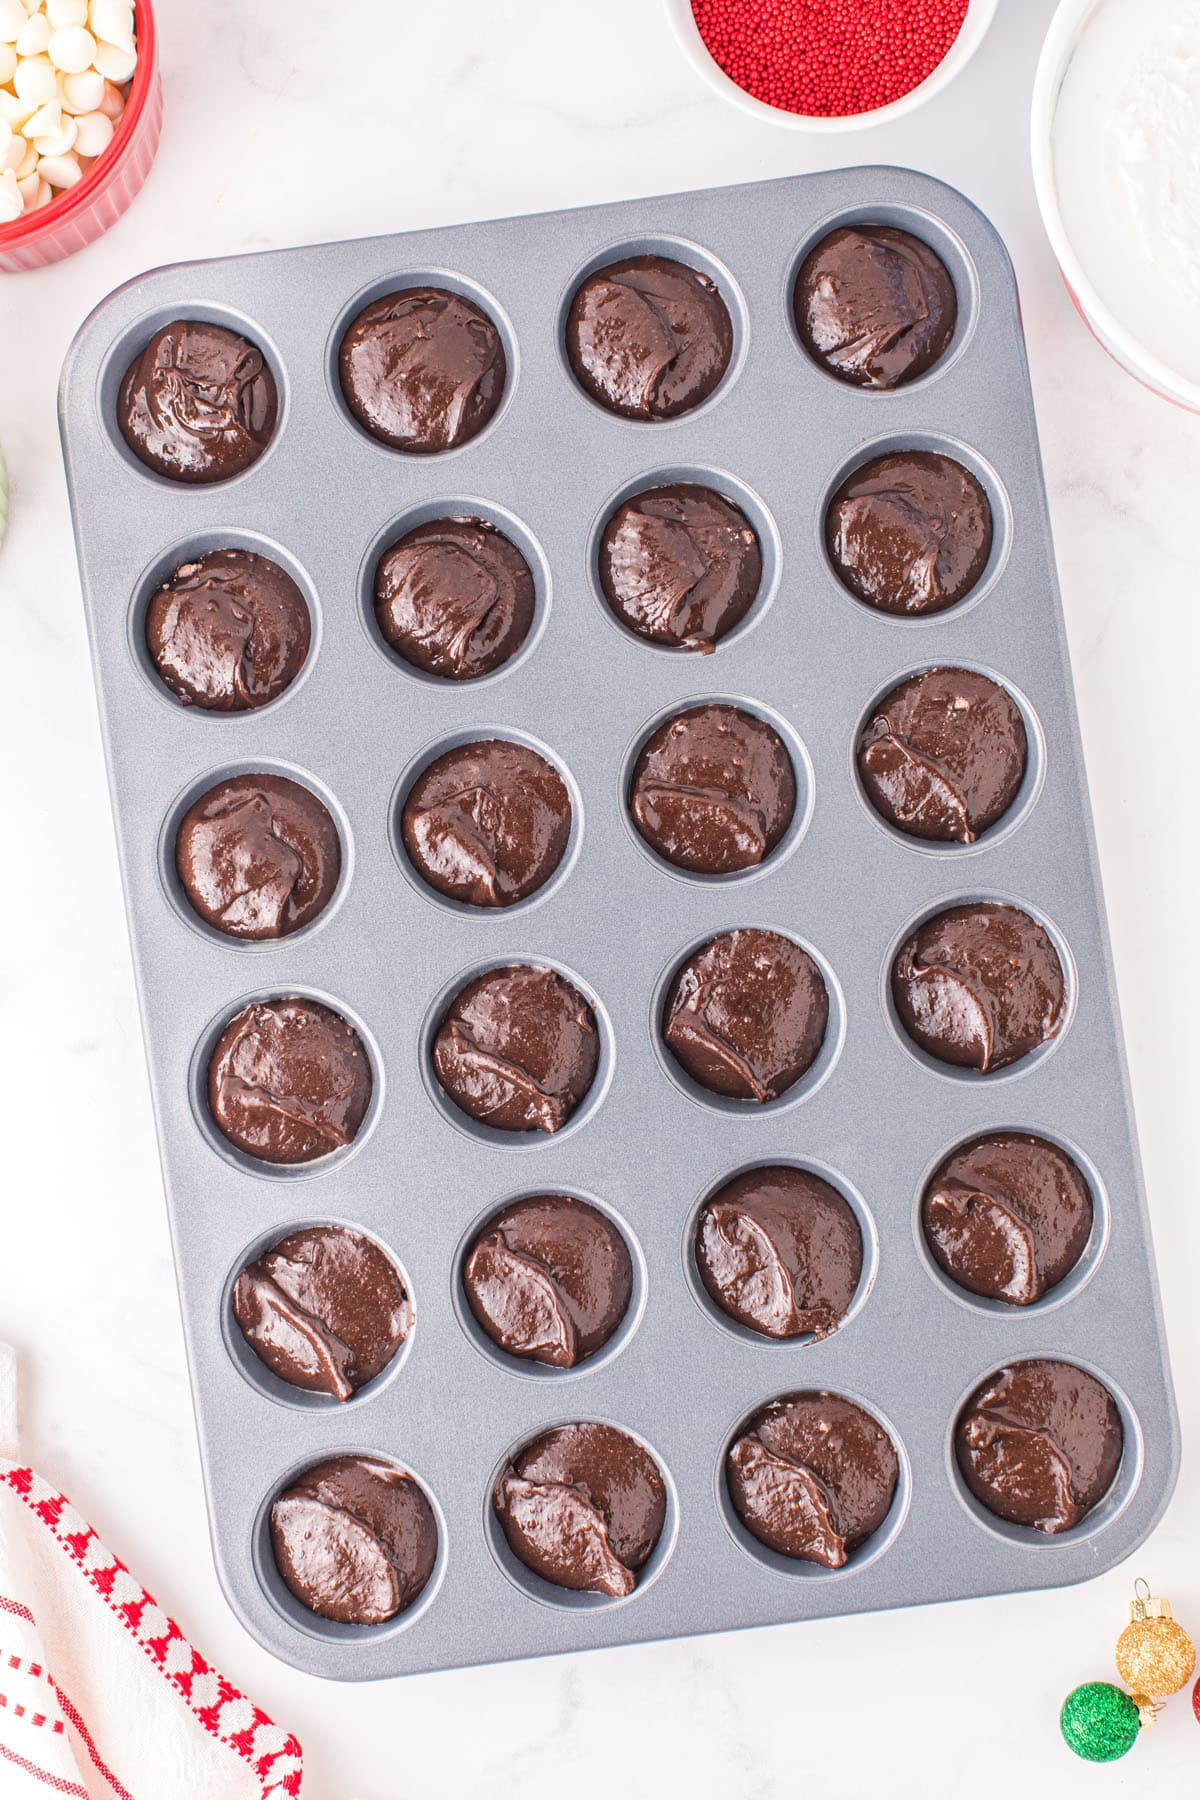 Fill mini muffin tins with brownie batter